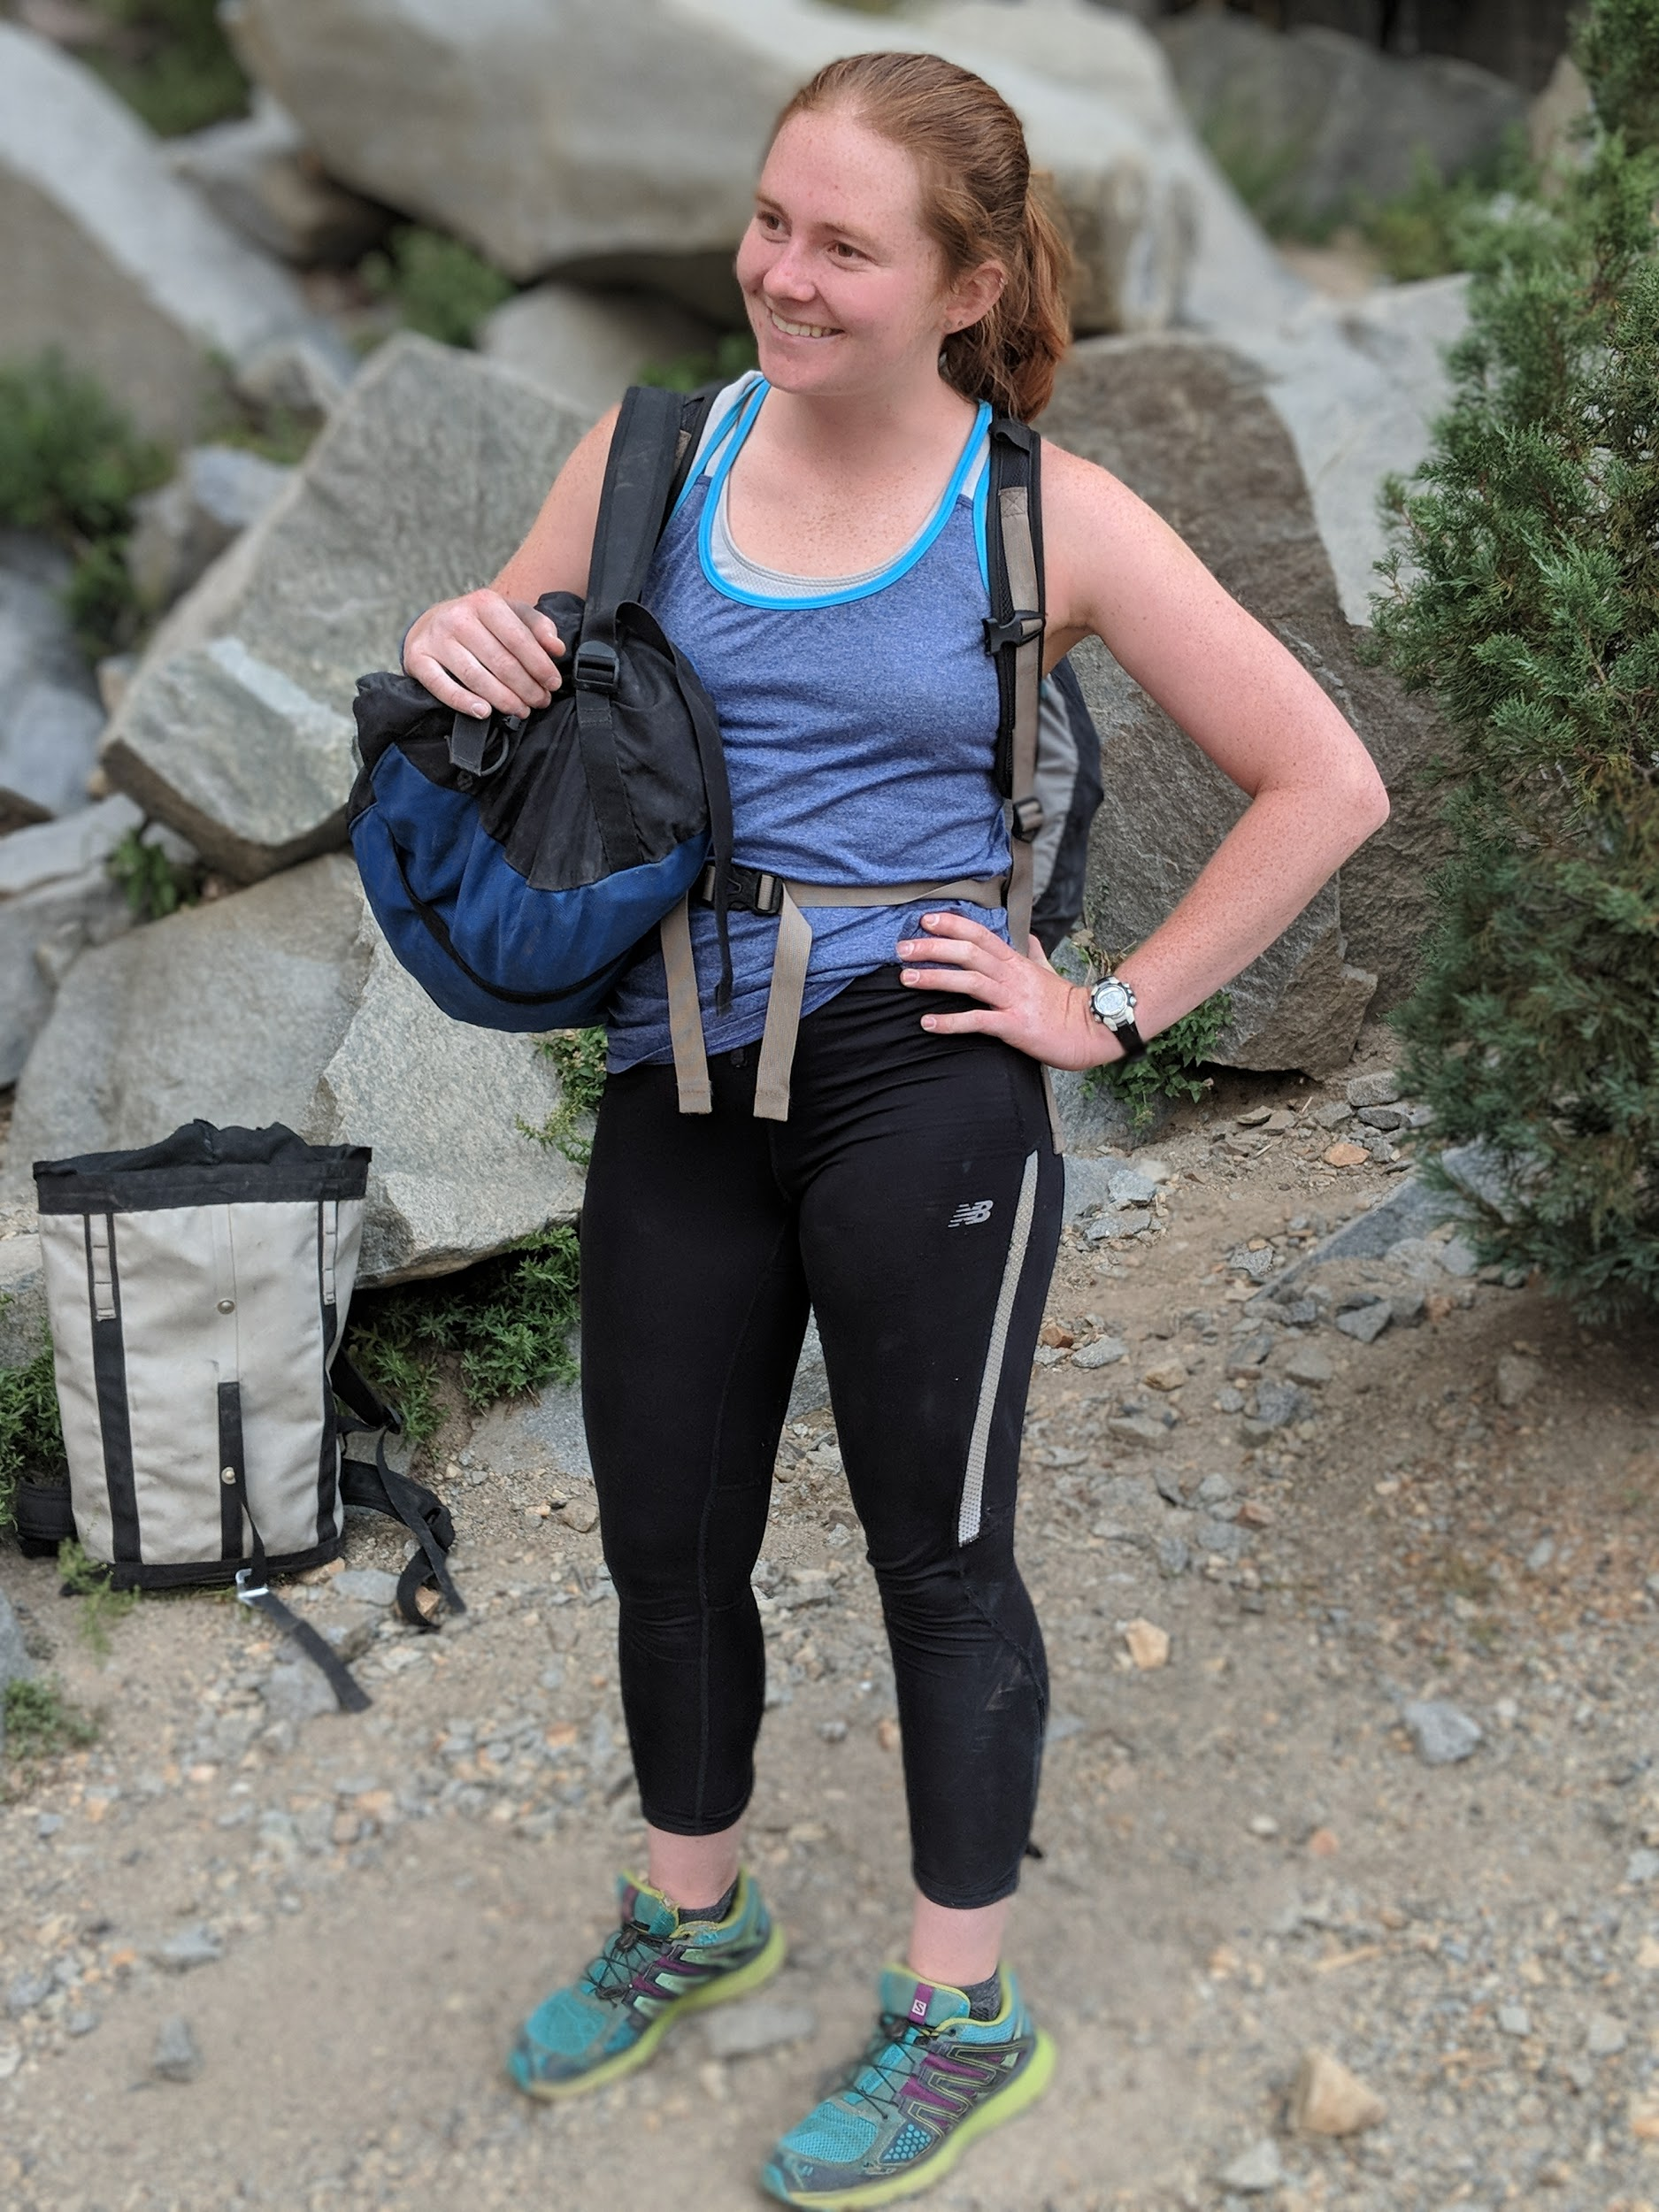 Female Rock Climber Wearing Spandex Leggings And A Synthetic Tank Top